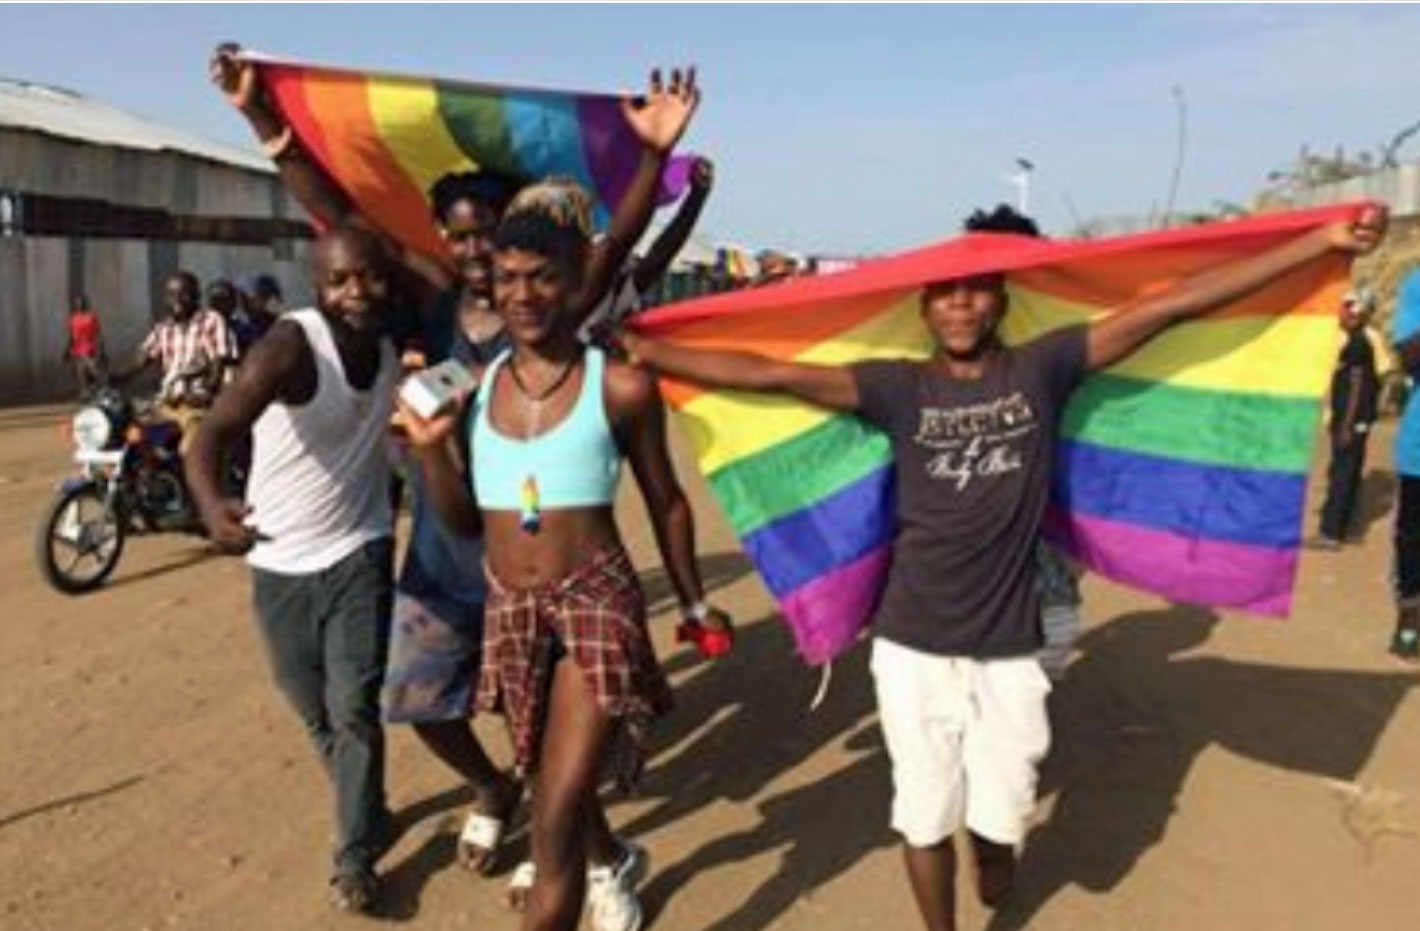 Scene from Pride at Kakuma refugee camp in Kenya. (Photo courtesy of Rainbow Flag Kakuma)